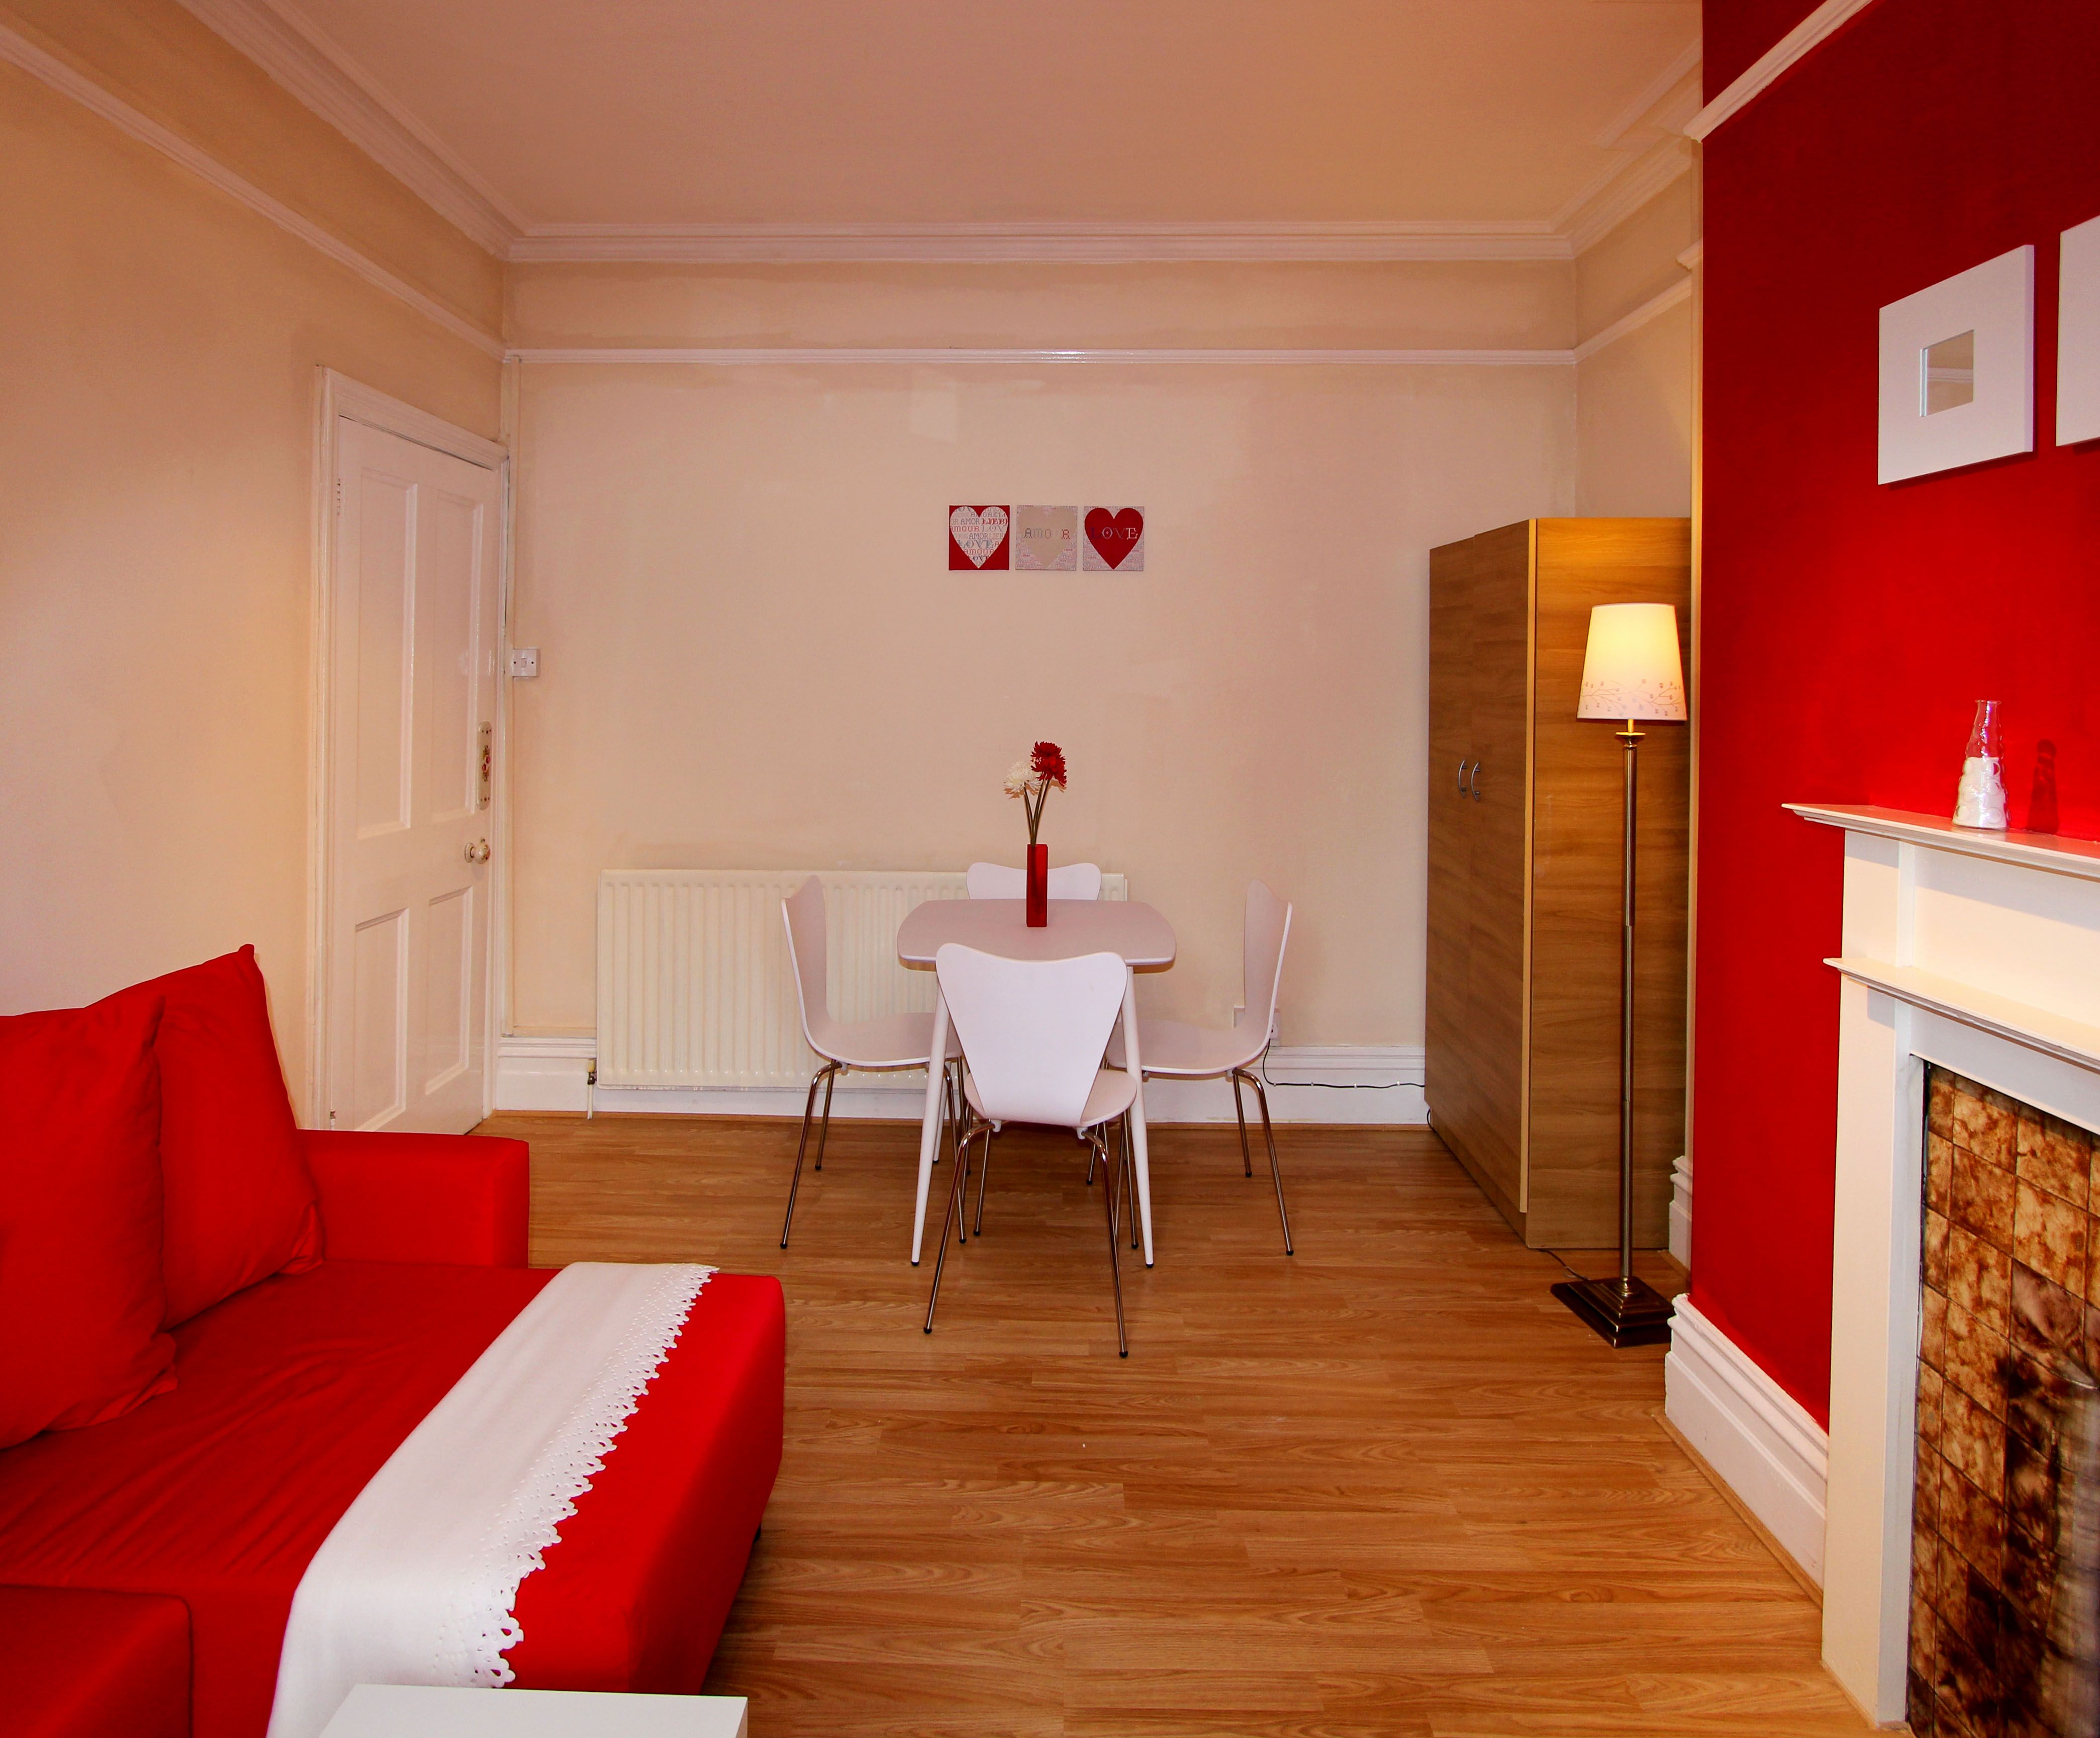 Holiday apartment to let in Russell Square, Central London